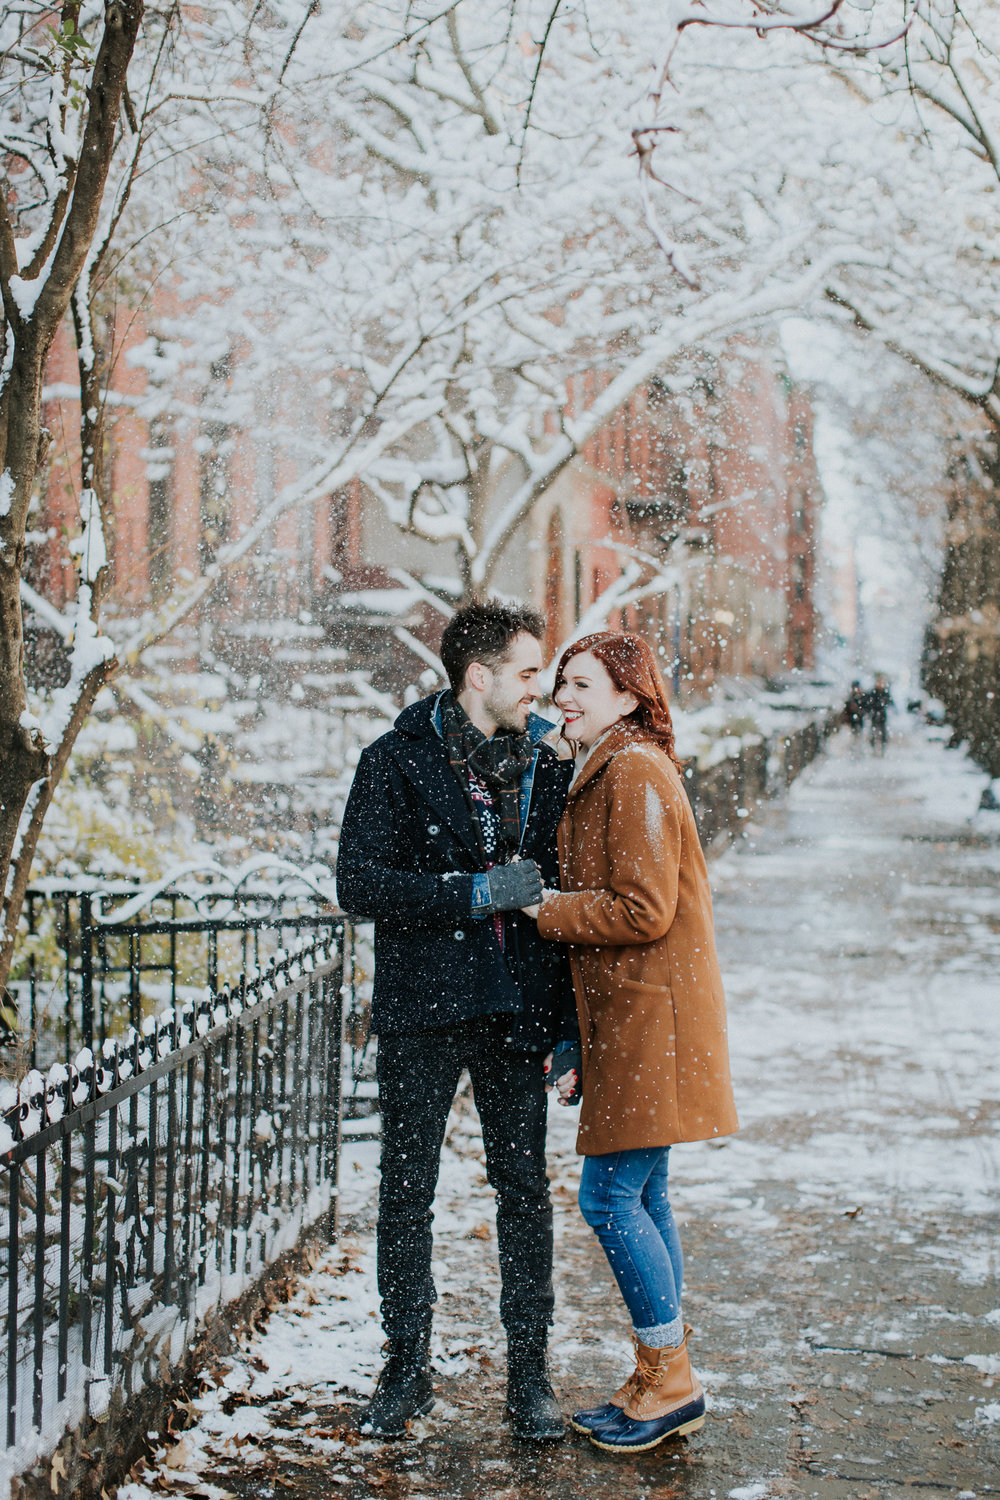 New-York-Documentary-Wedding-Photography-Best-Of-2017-by-Elvira-Kalviste-Photography-132.jpg